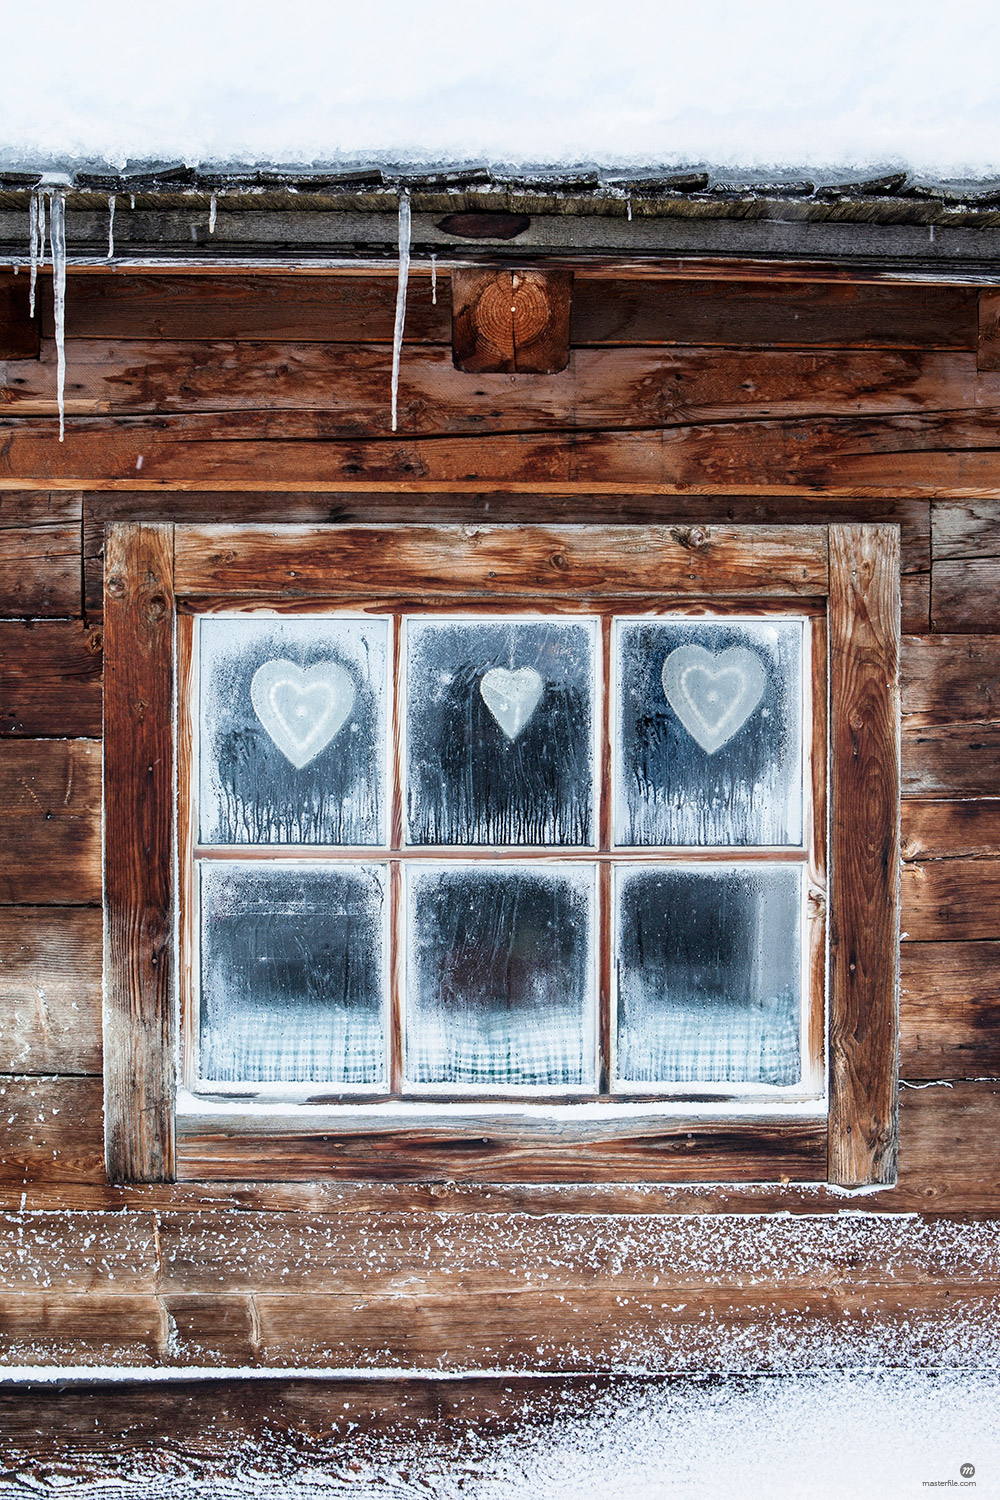 Hearts on window of log cabin © Masterfile